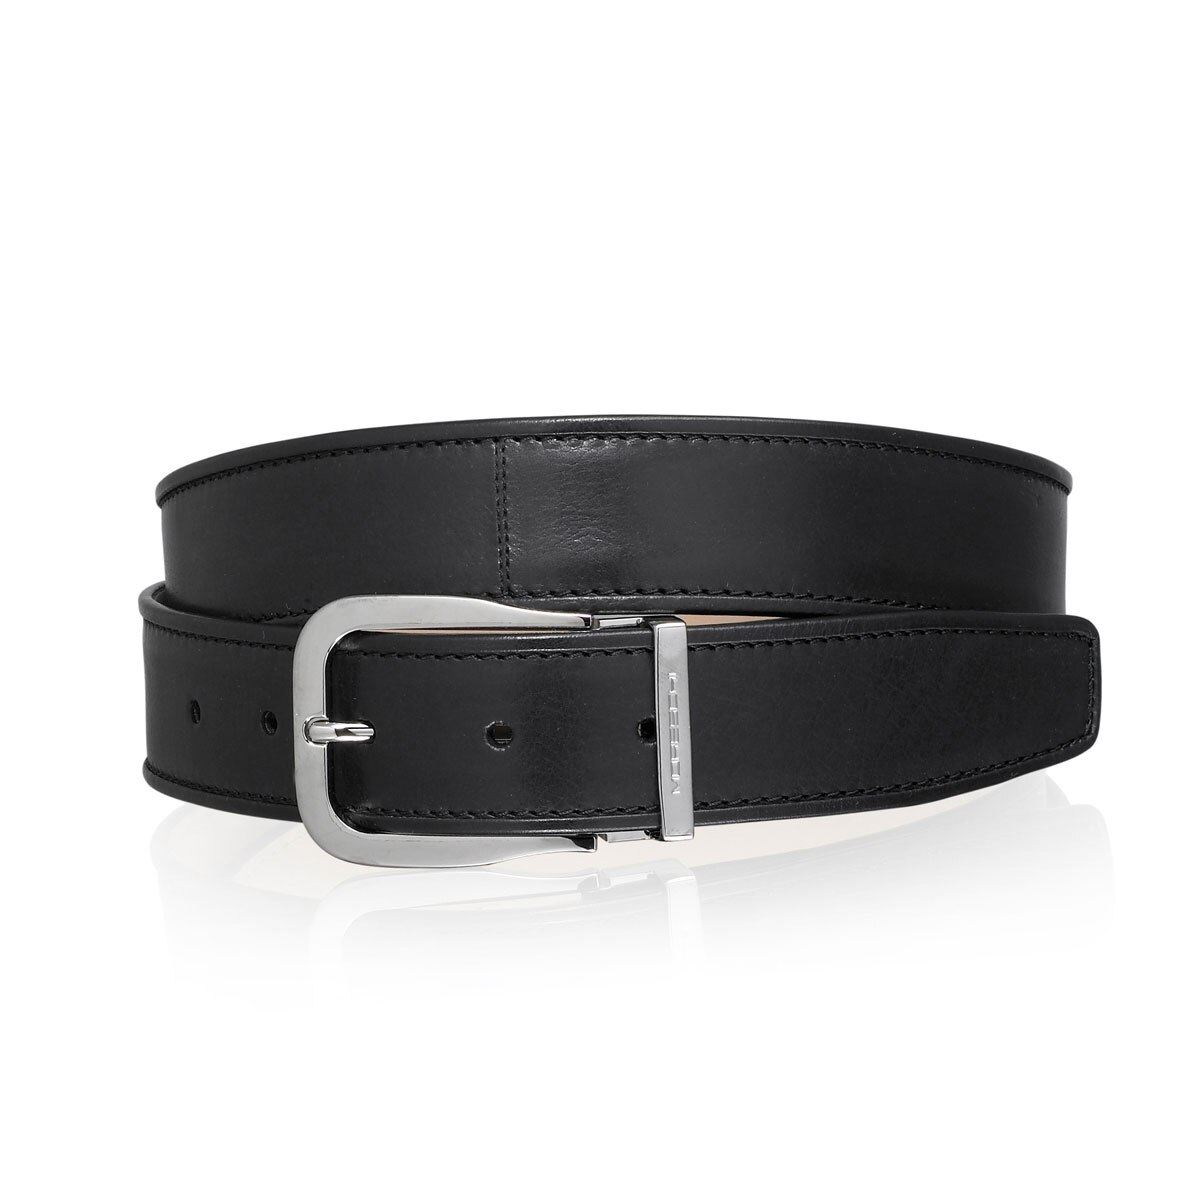 KEEPER Piped Edge Belt